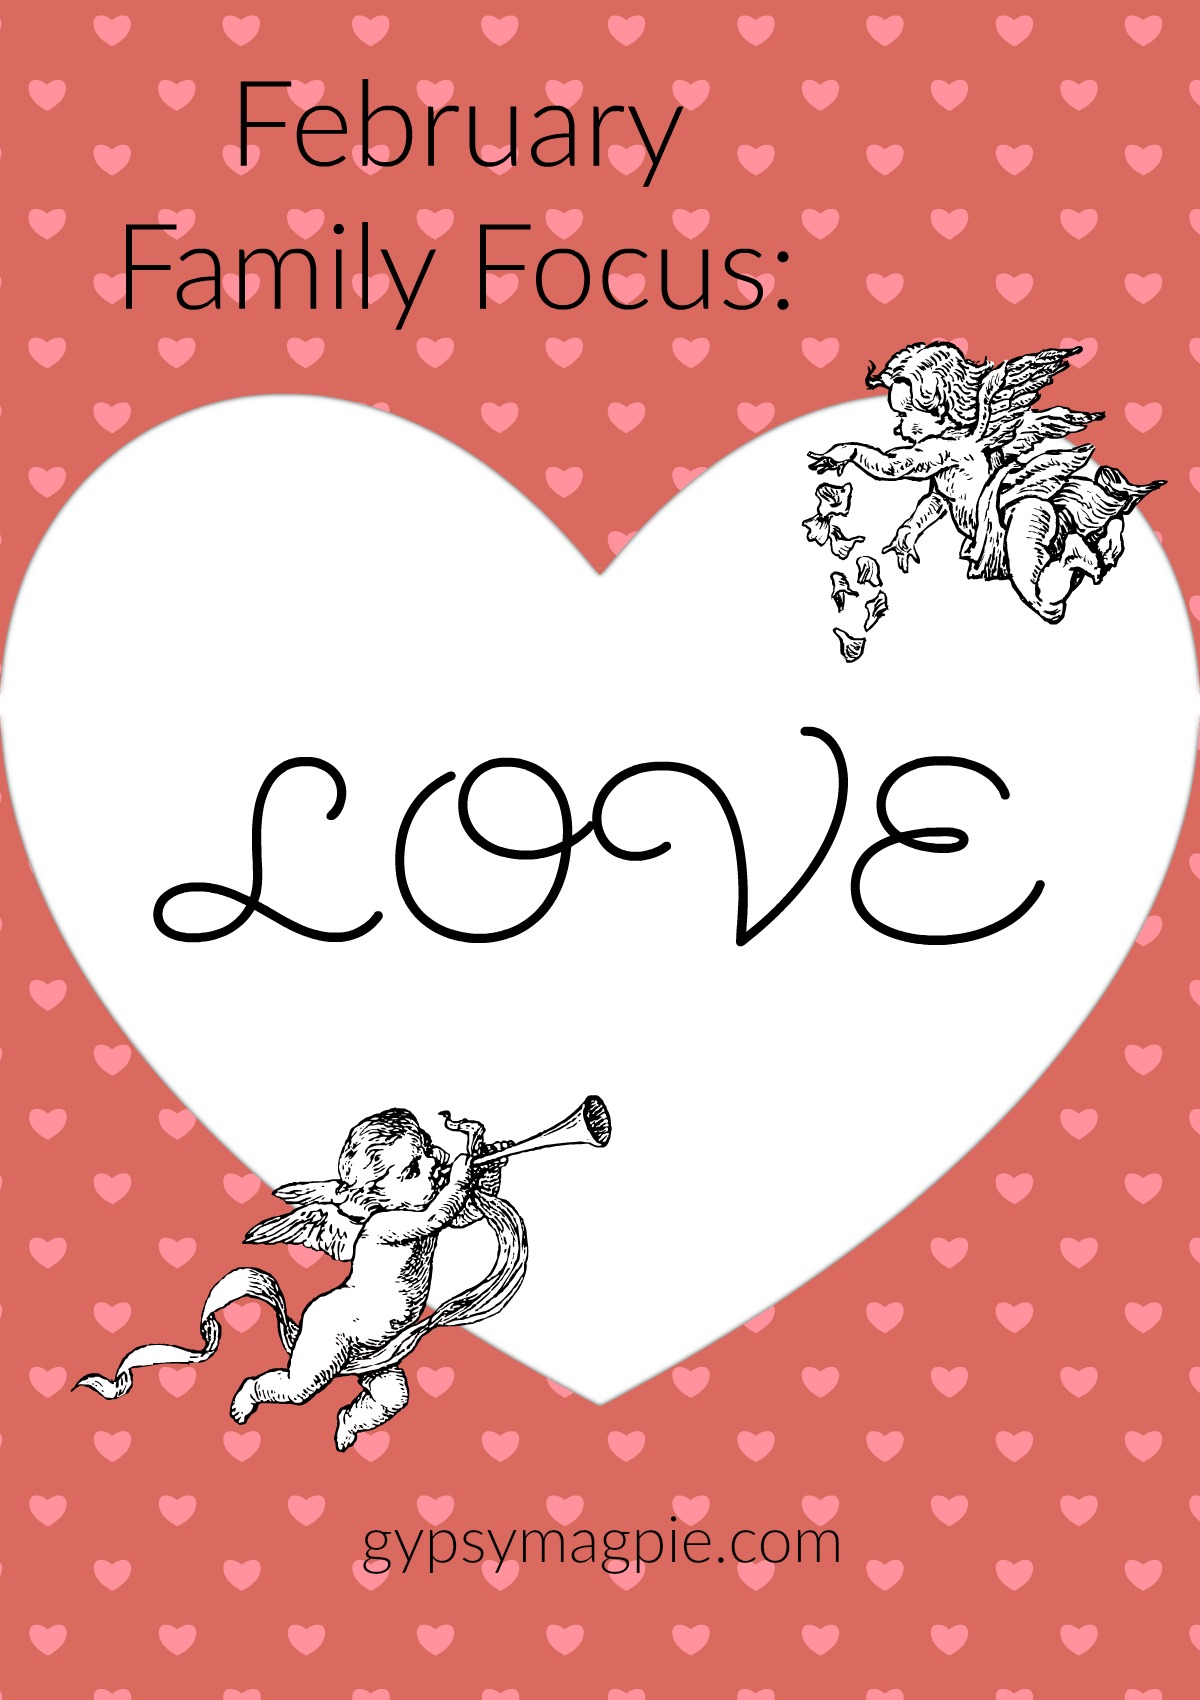 February Family Focus Love + Free Printable | Gypsy Magpie